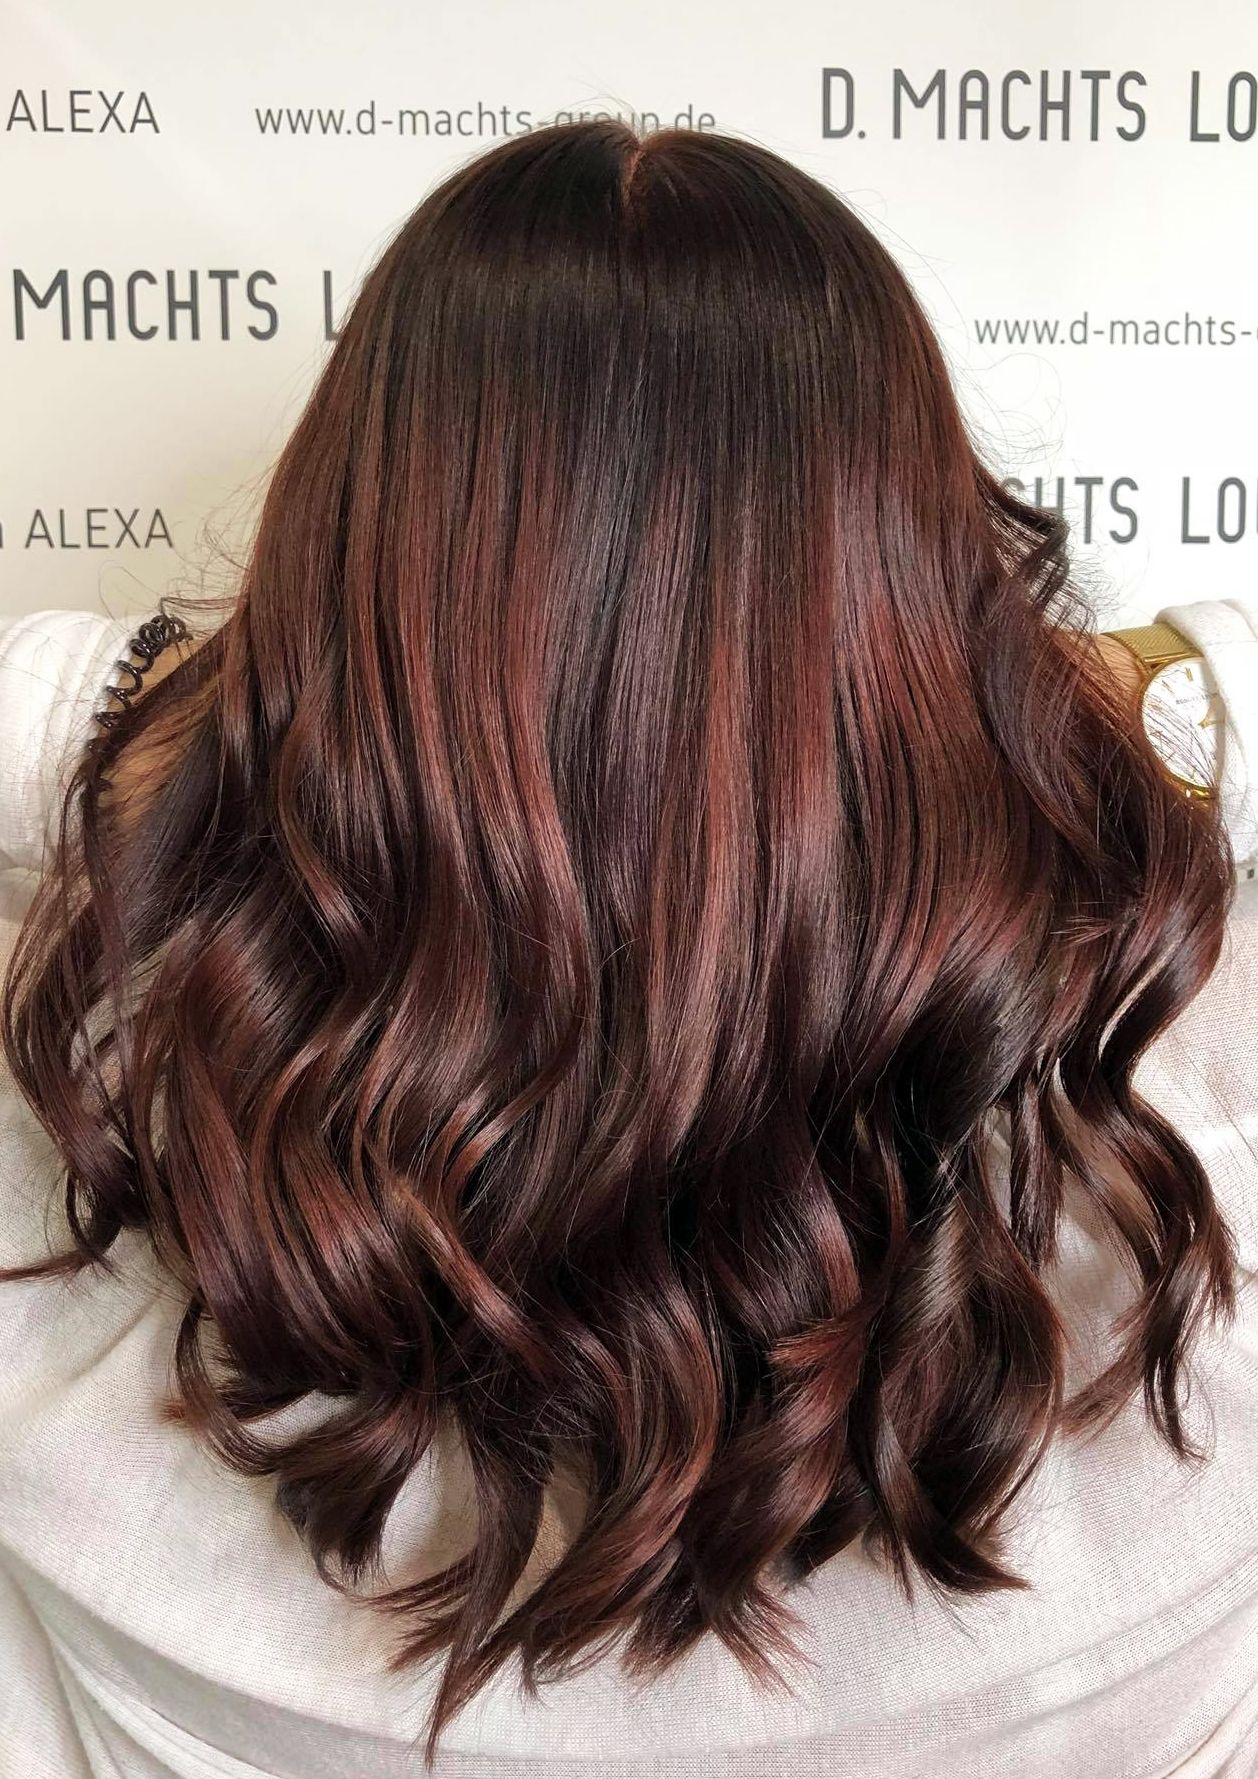 Haarfarben Rot Braun Frisuren Trends D Machts Lounge